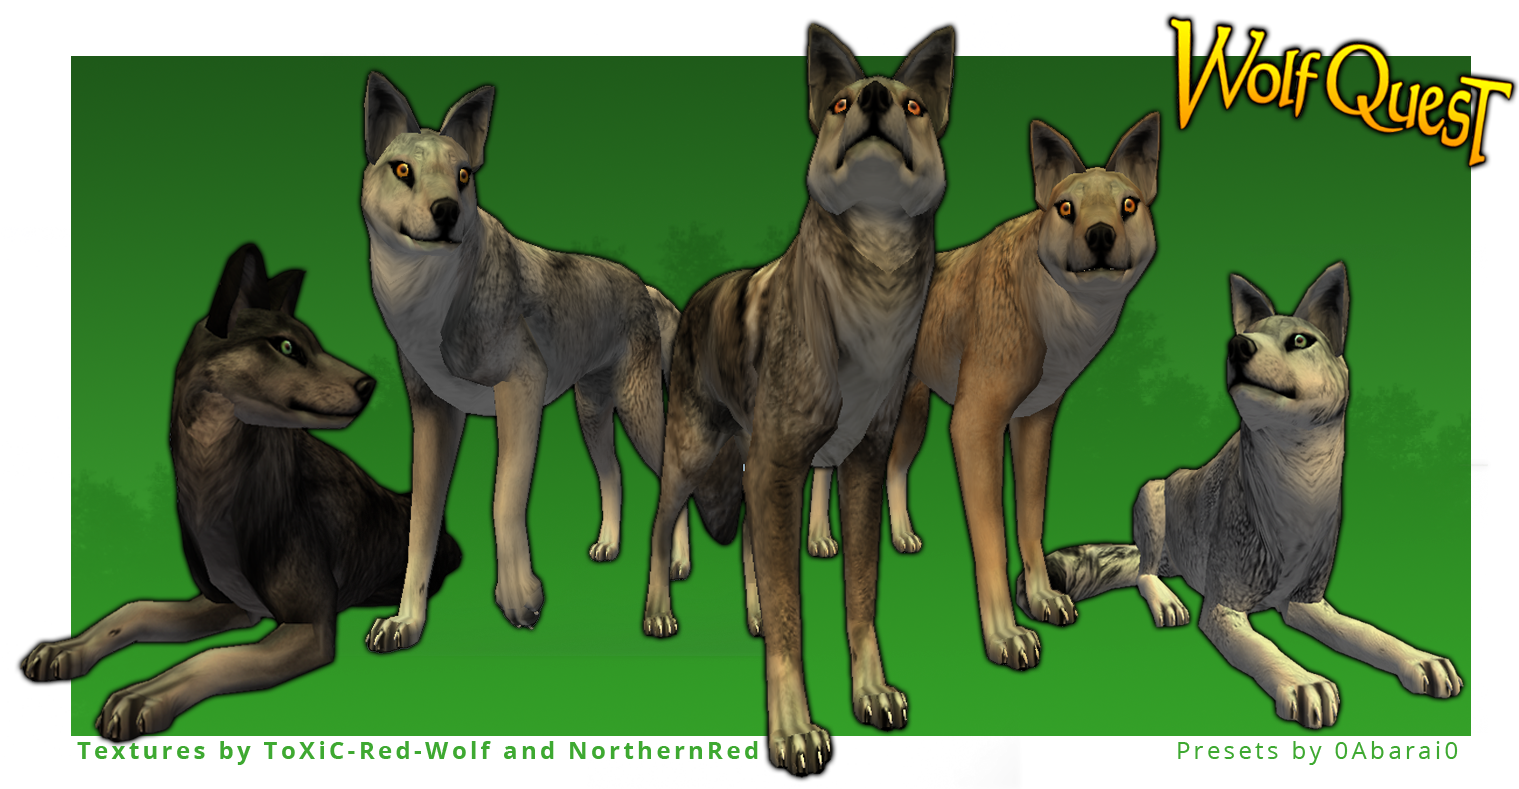 wolf quest for free